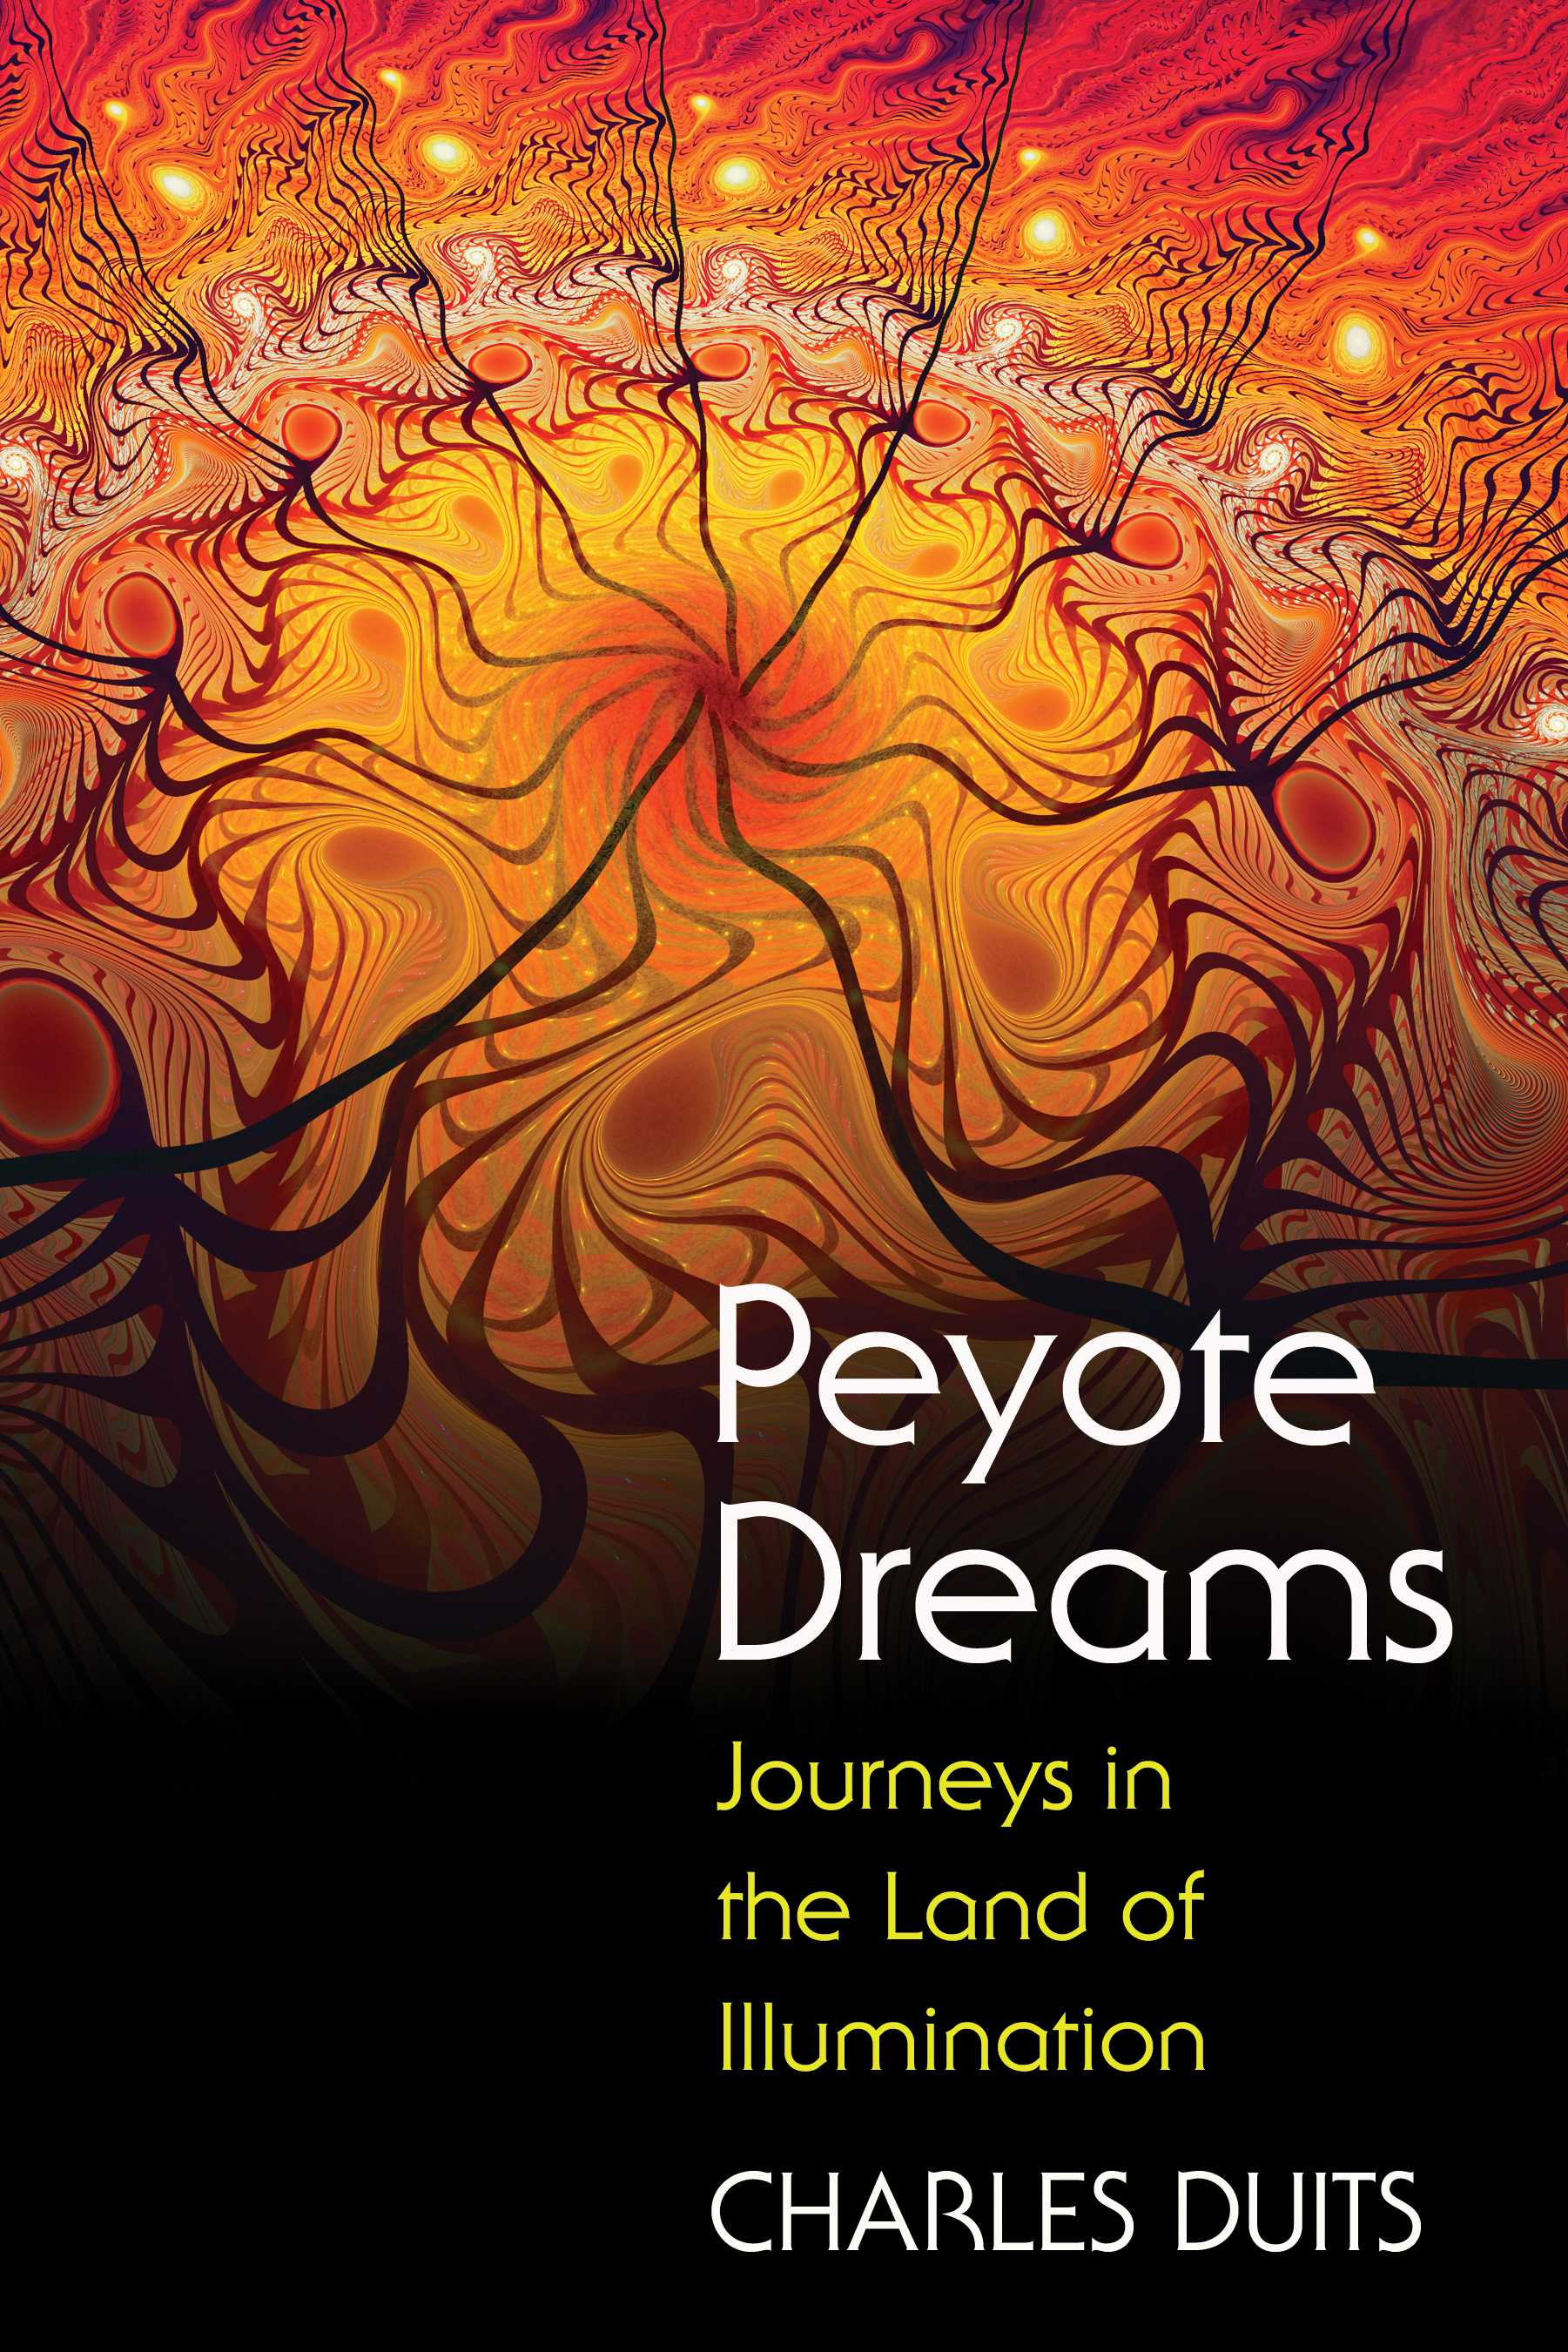 Peyote dreams 9781594774492 hr